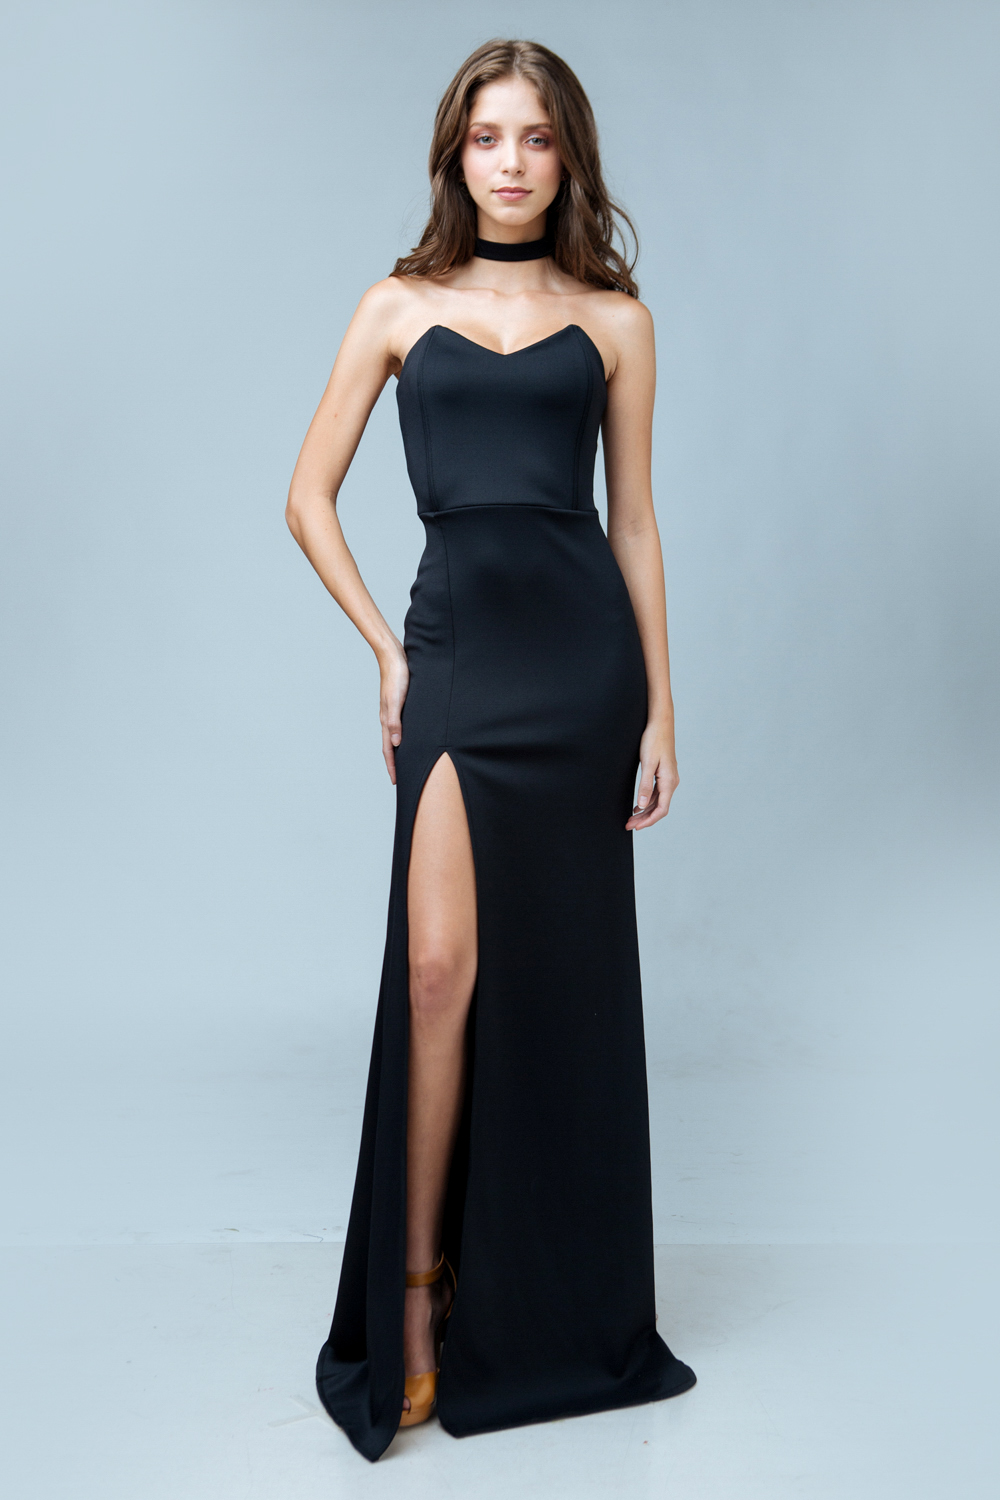 ZOO – Fashion Online | ALEGRA Pointed Tube Dress with High Slit and ...